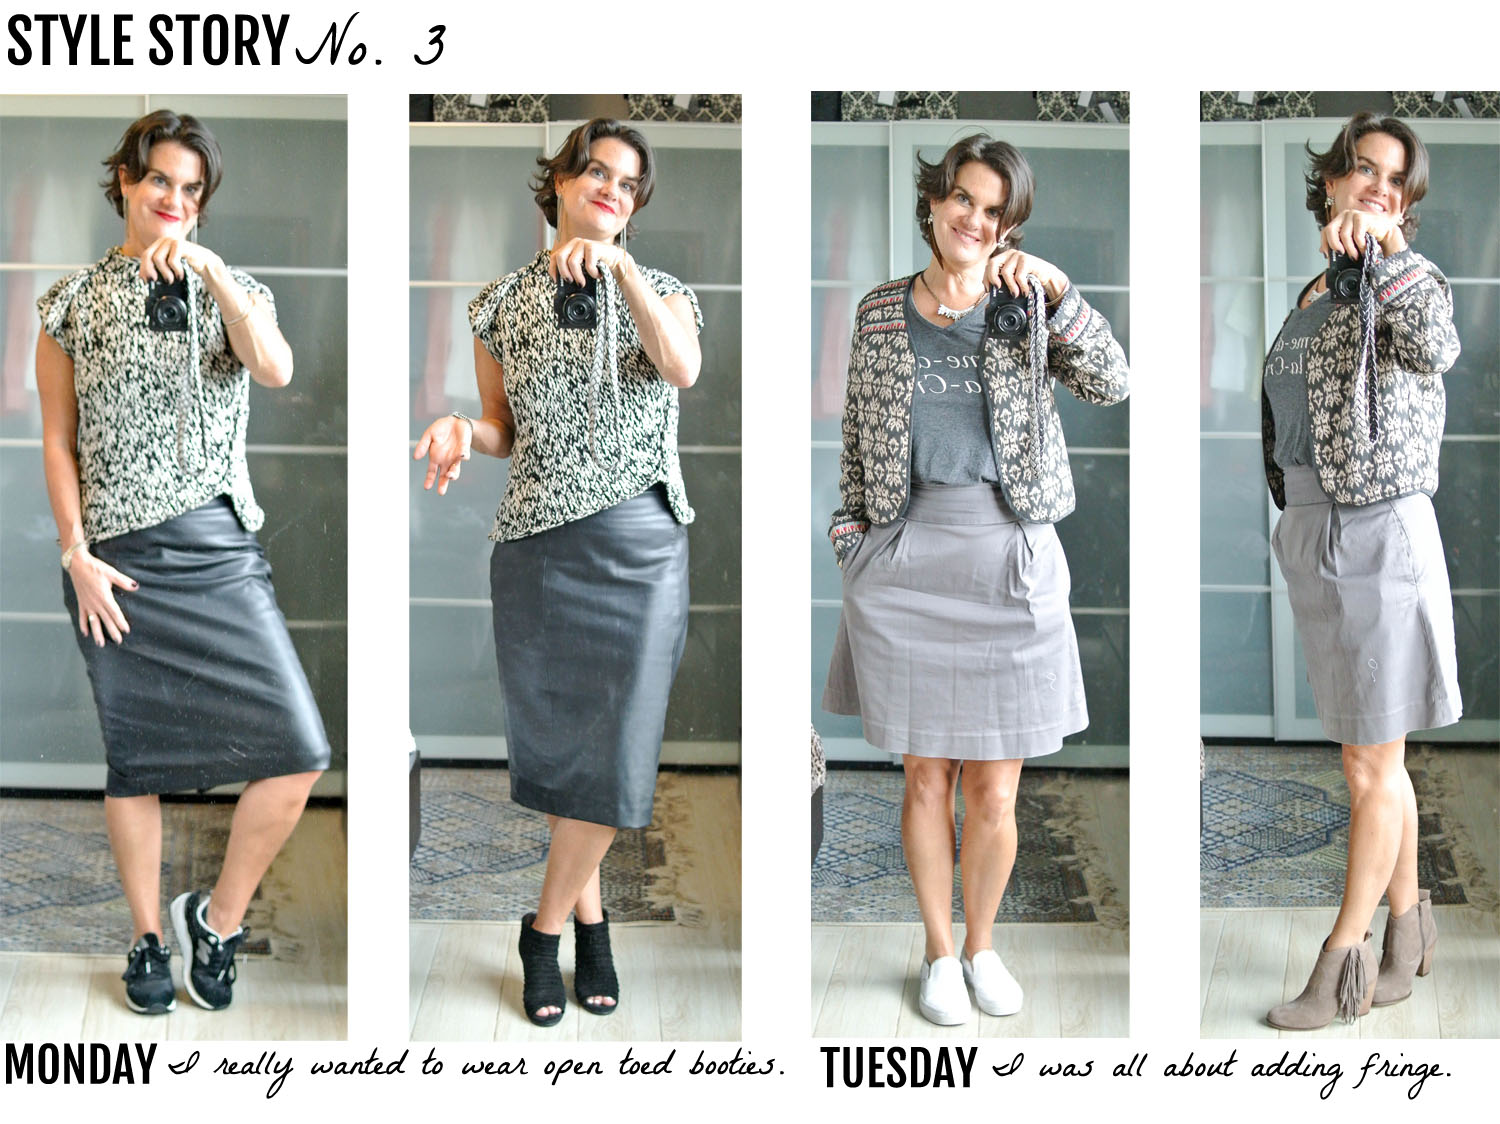 Style Story 3